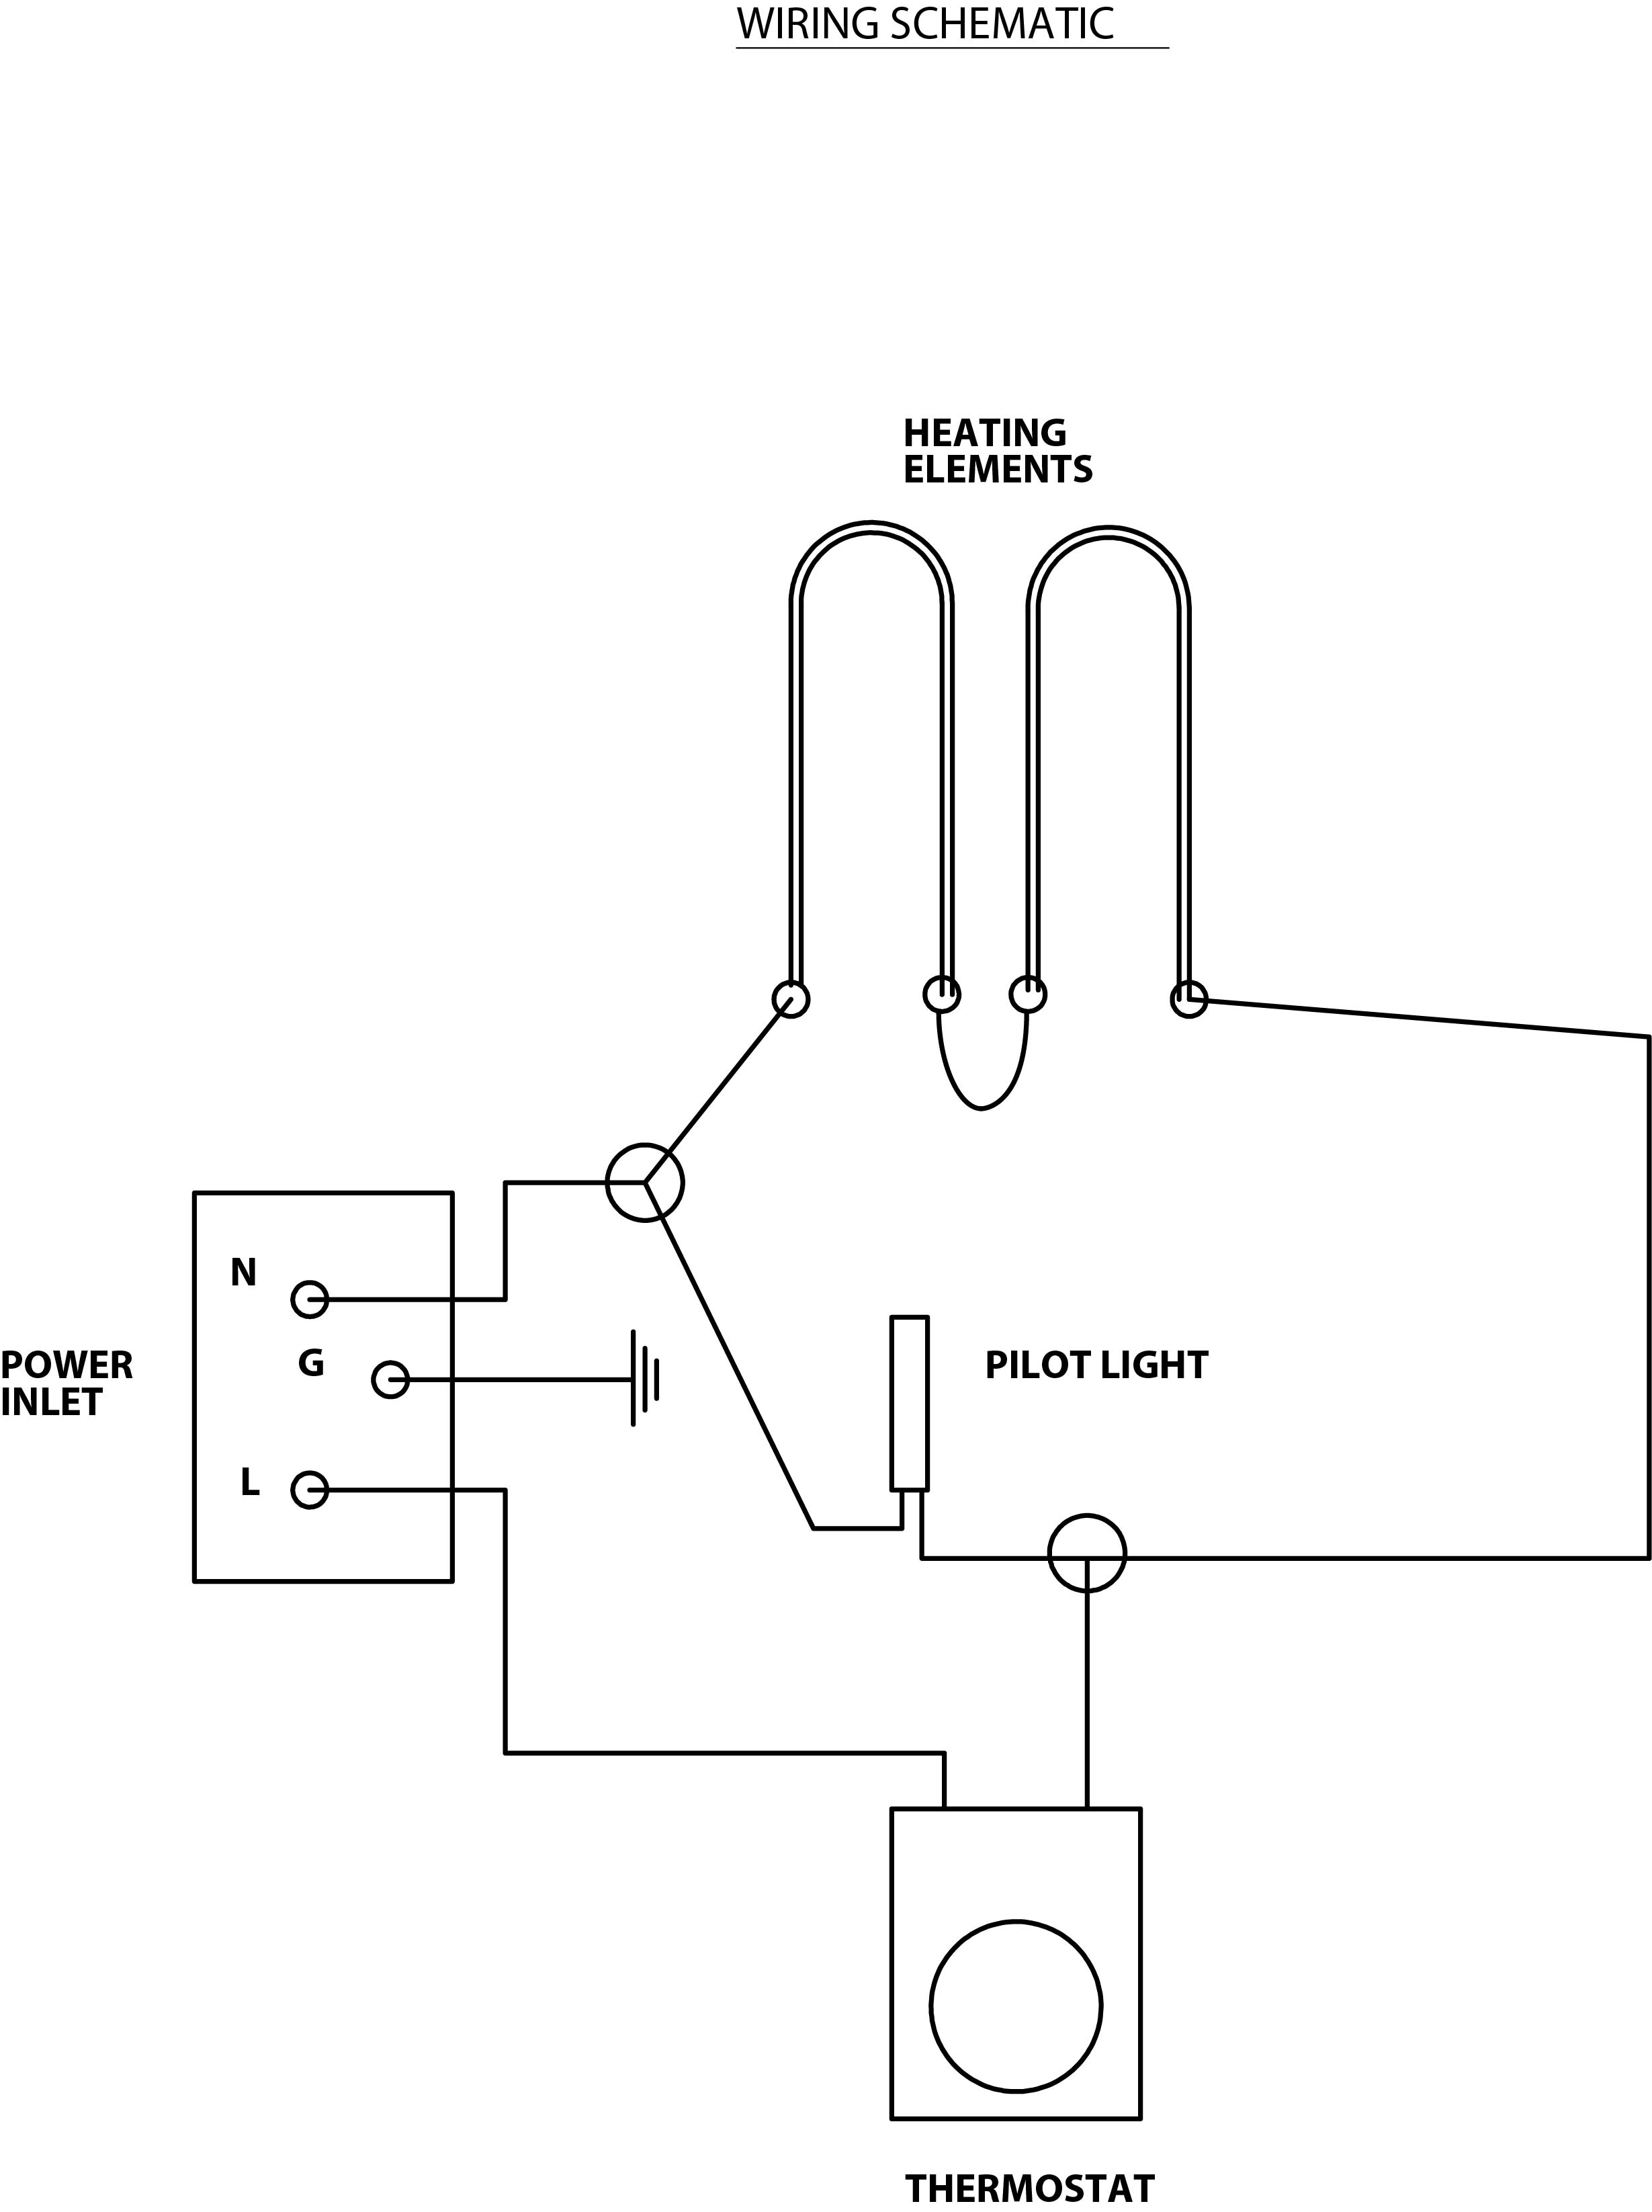 460 220 Volt Wiring Diagram on 120 volt pressor wiring